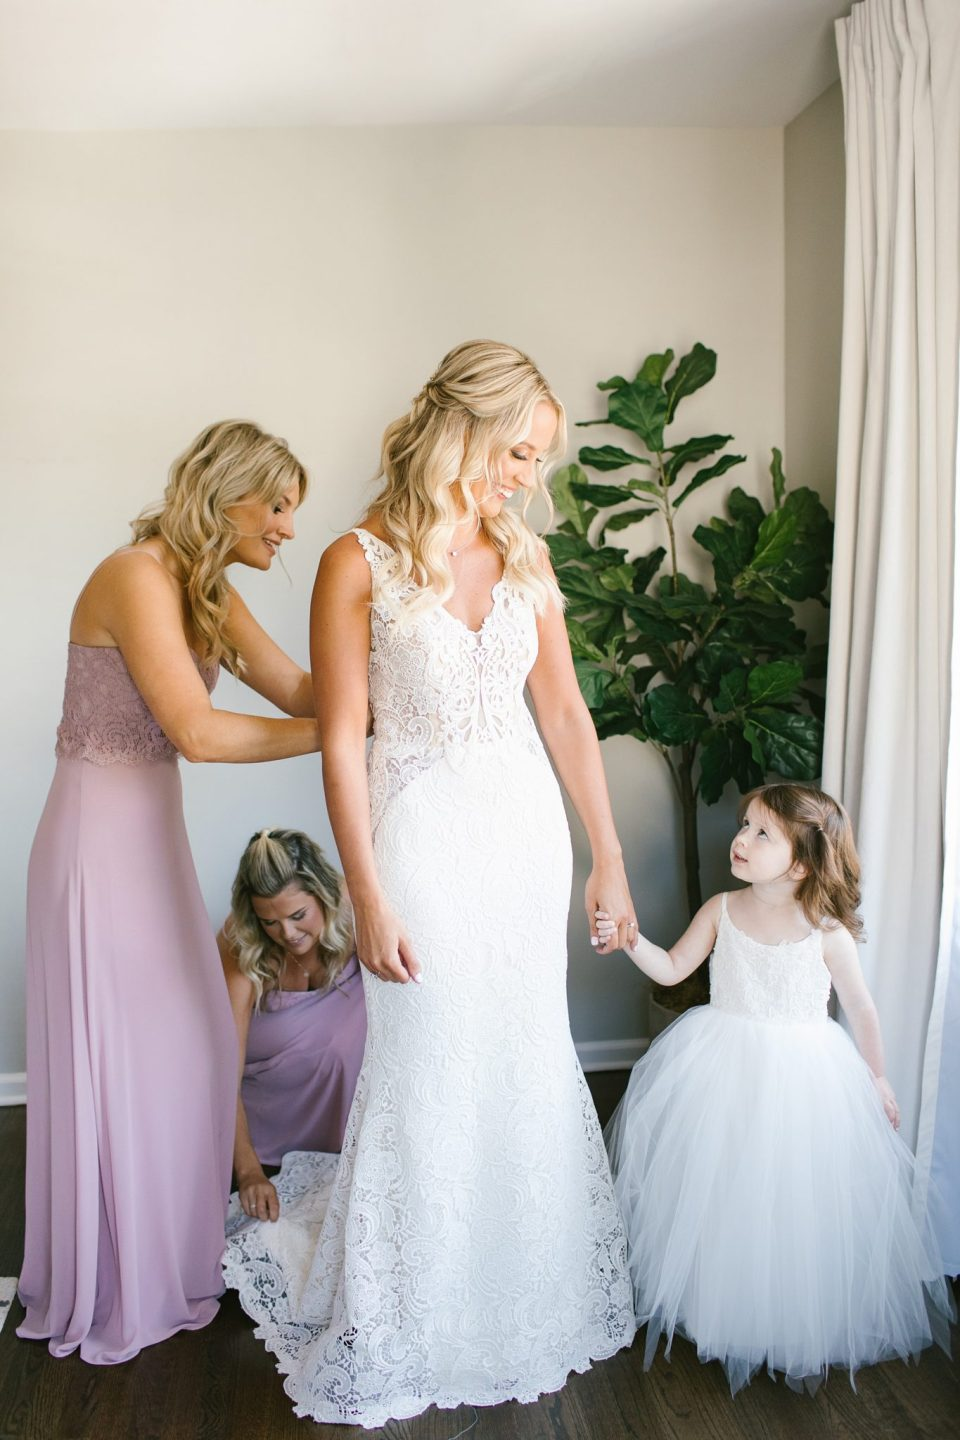 wedding day preparations photographed by Ashley Mac Photographs